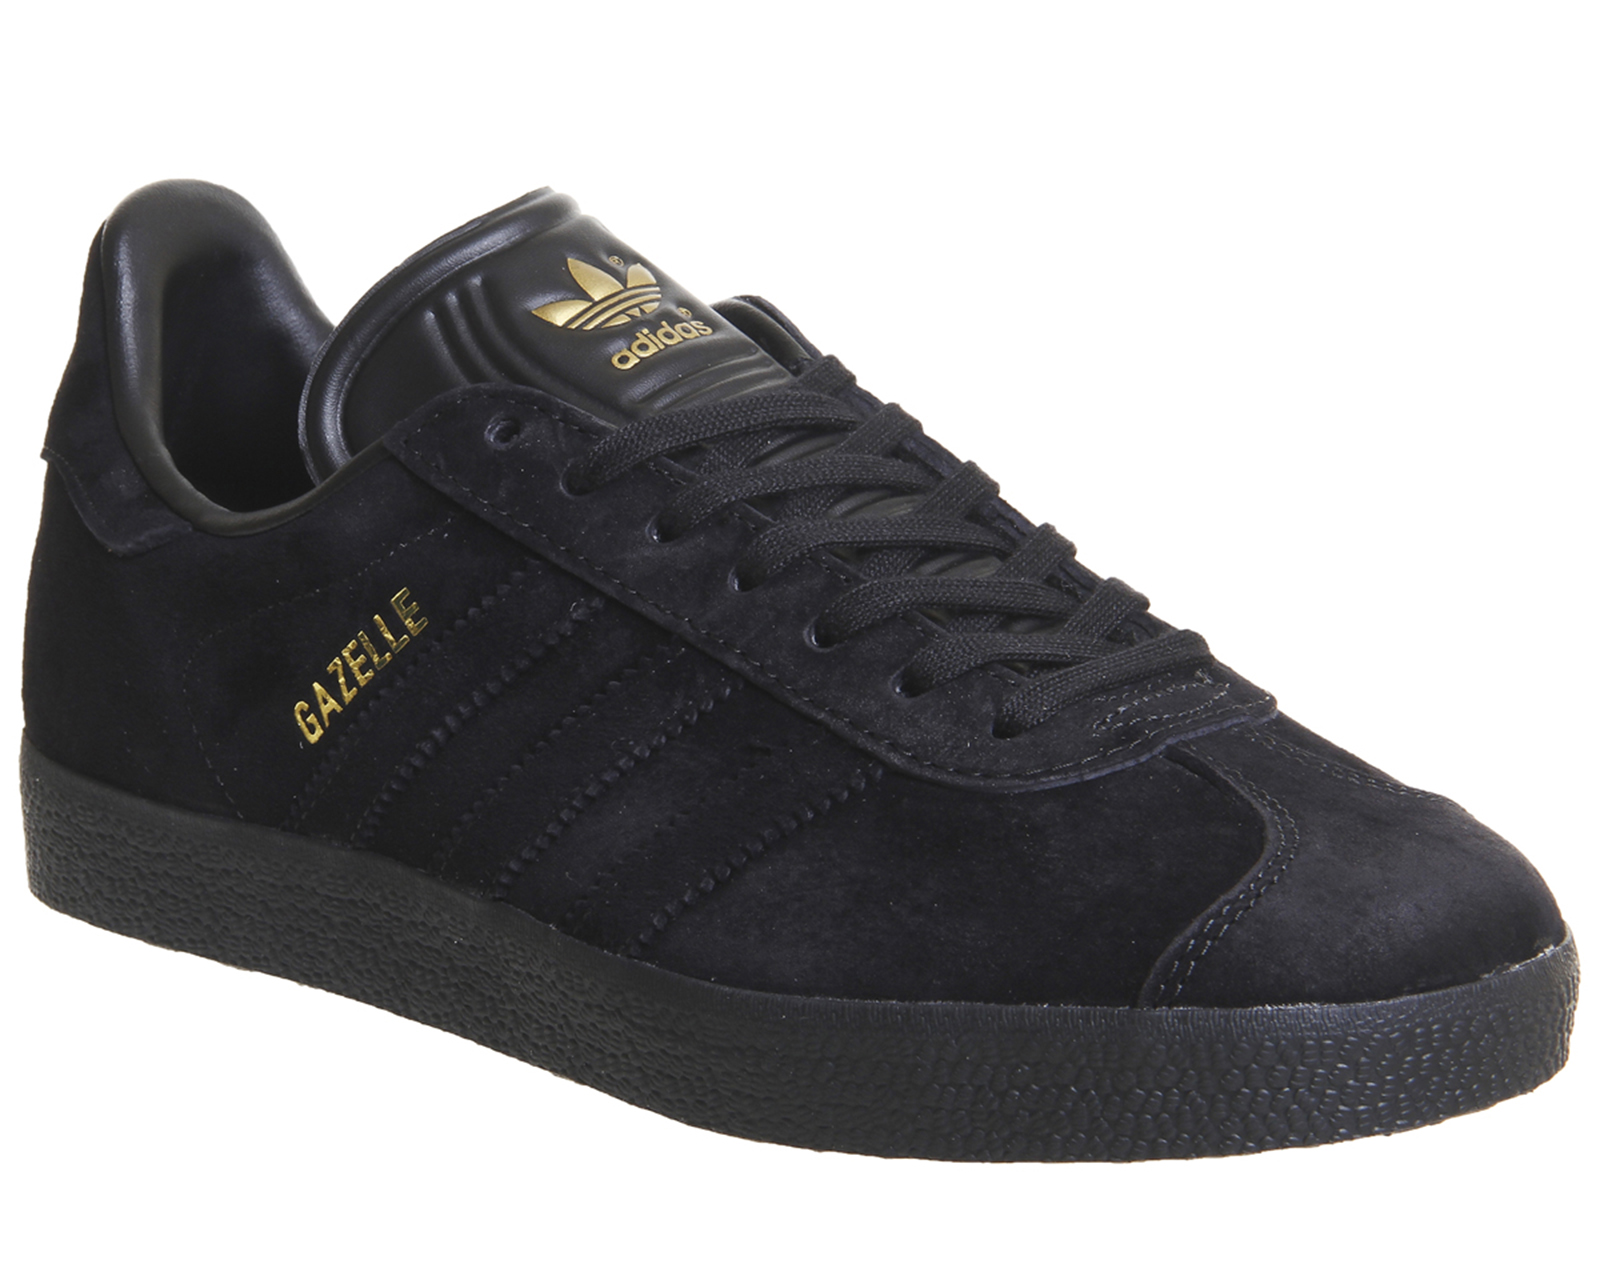 c96b5787 Sentinel Adidas Gazelle Trainers BLACK GOLD EXCLUSIVE Trainers Shoes